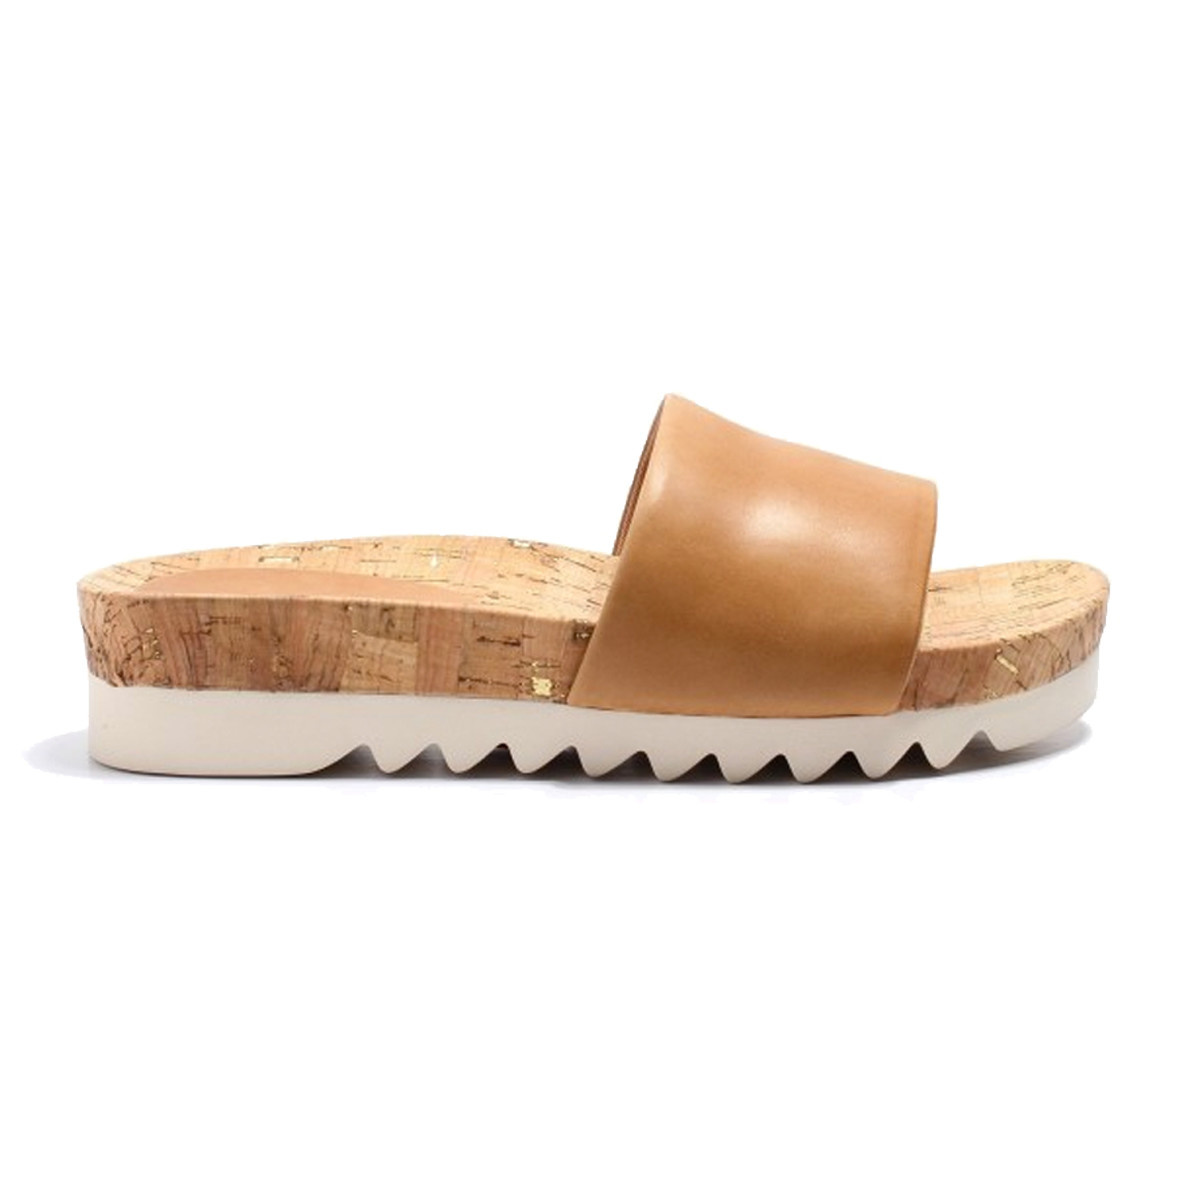 Rollie Rollie Sandal Slide Saw Tooth Wedge Tan